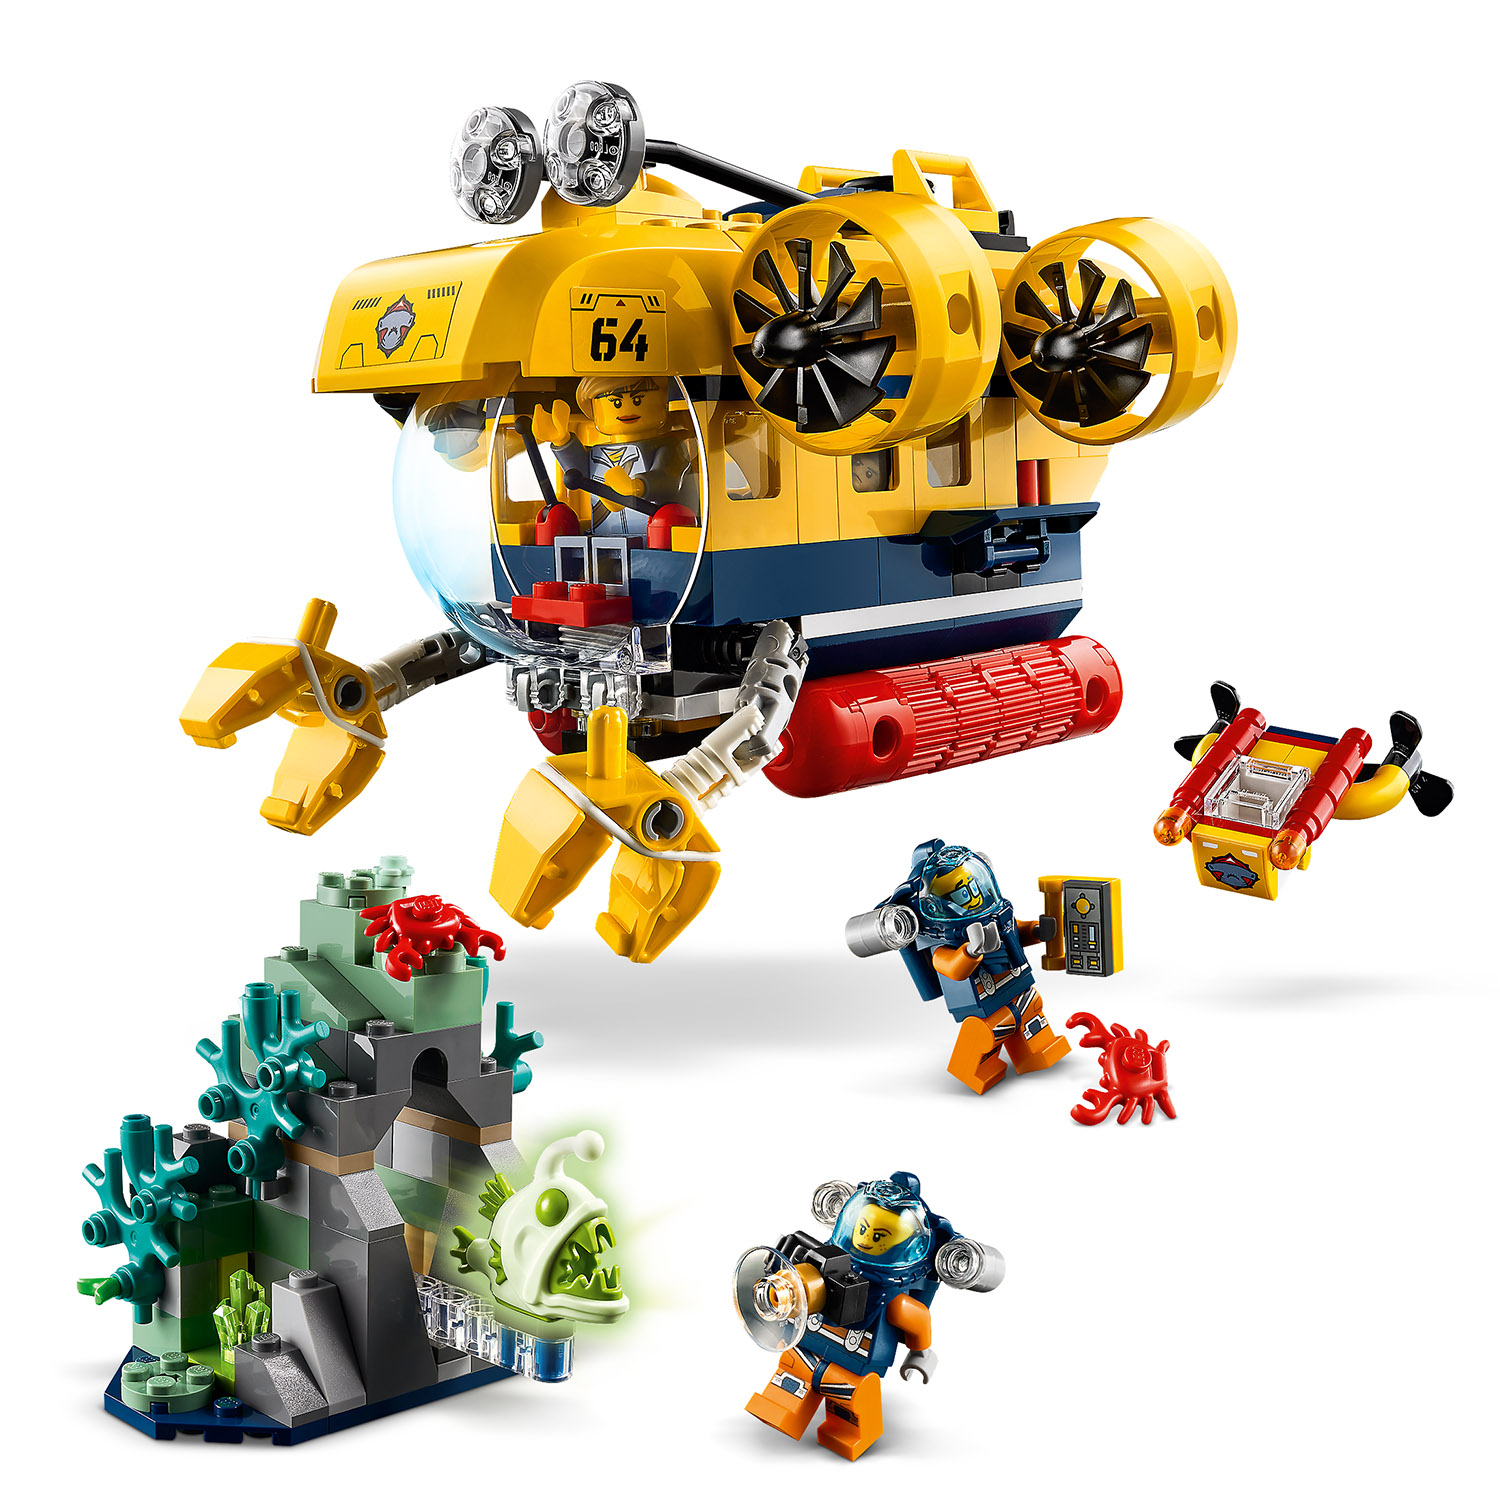 LEGO® City 60264 Meeresforschungs-U-Boot Minifigs